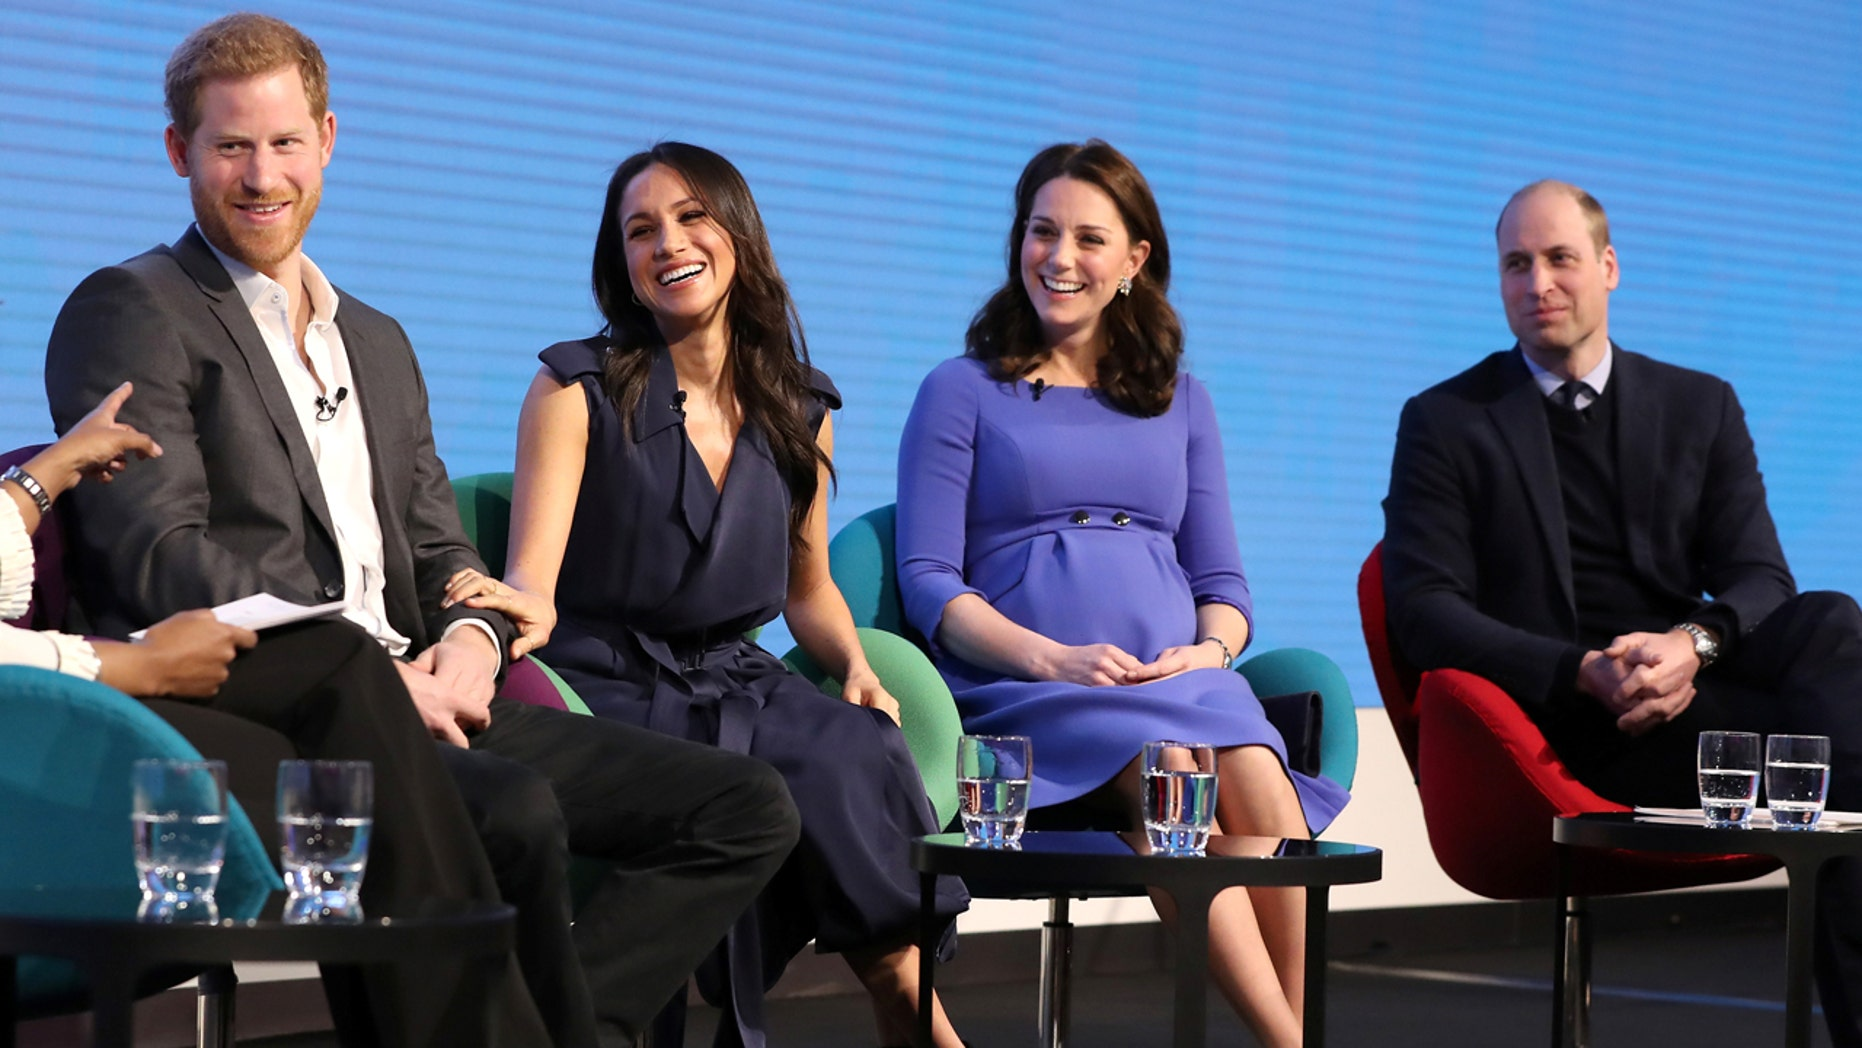 Britain's Prince Harry, his fiancee Meghan Markle, Prince William and Catherine, Duchess of Cambridge attend the first annual Royal Foundation Forum held at Aviva in London, February 28, 2018 .